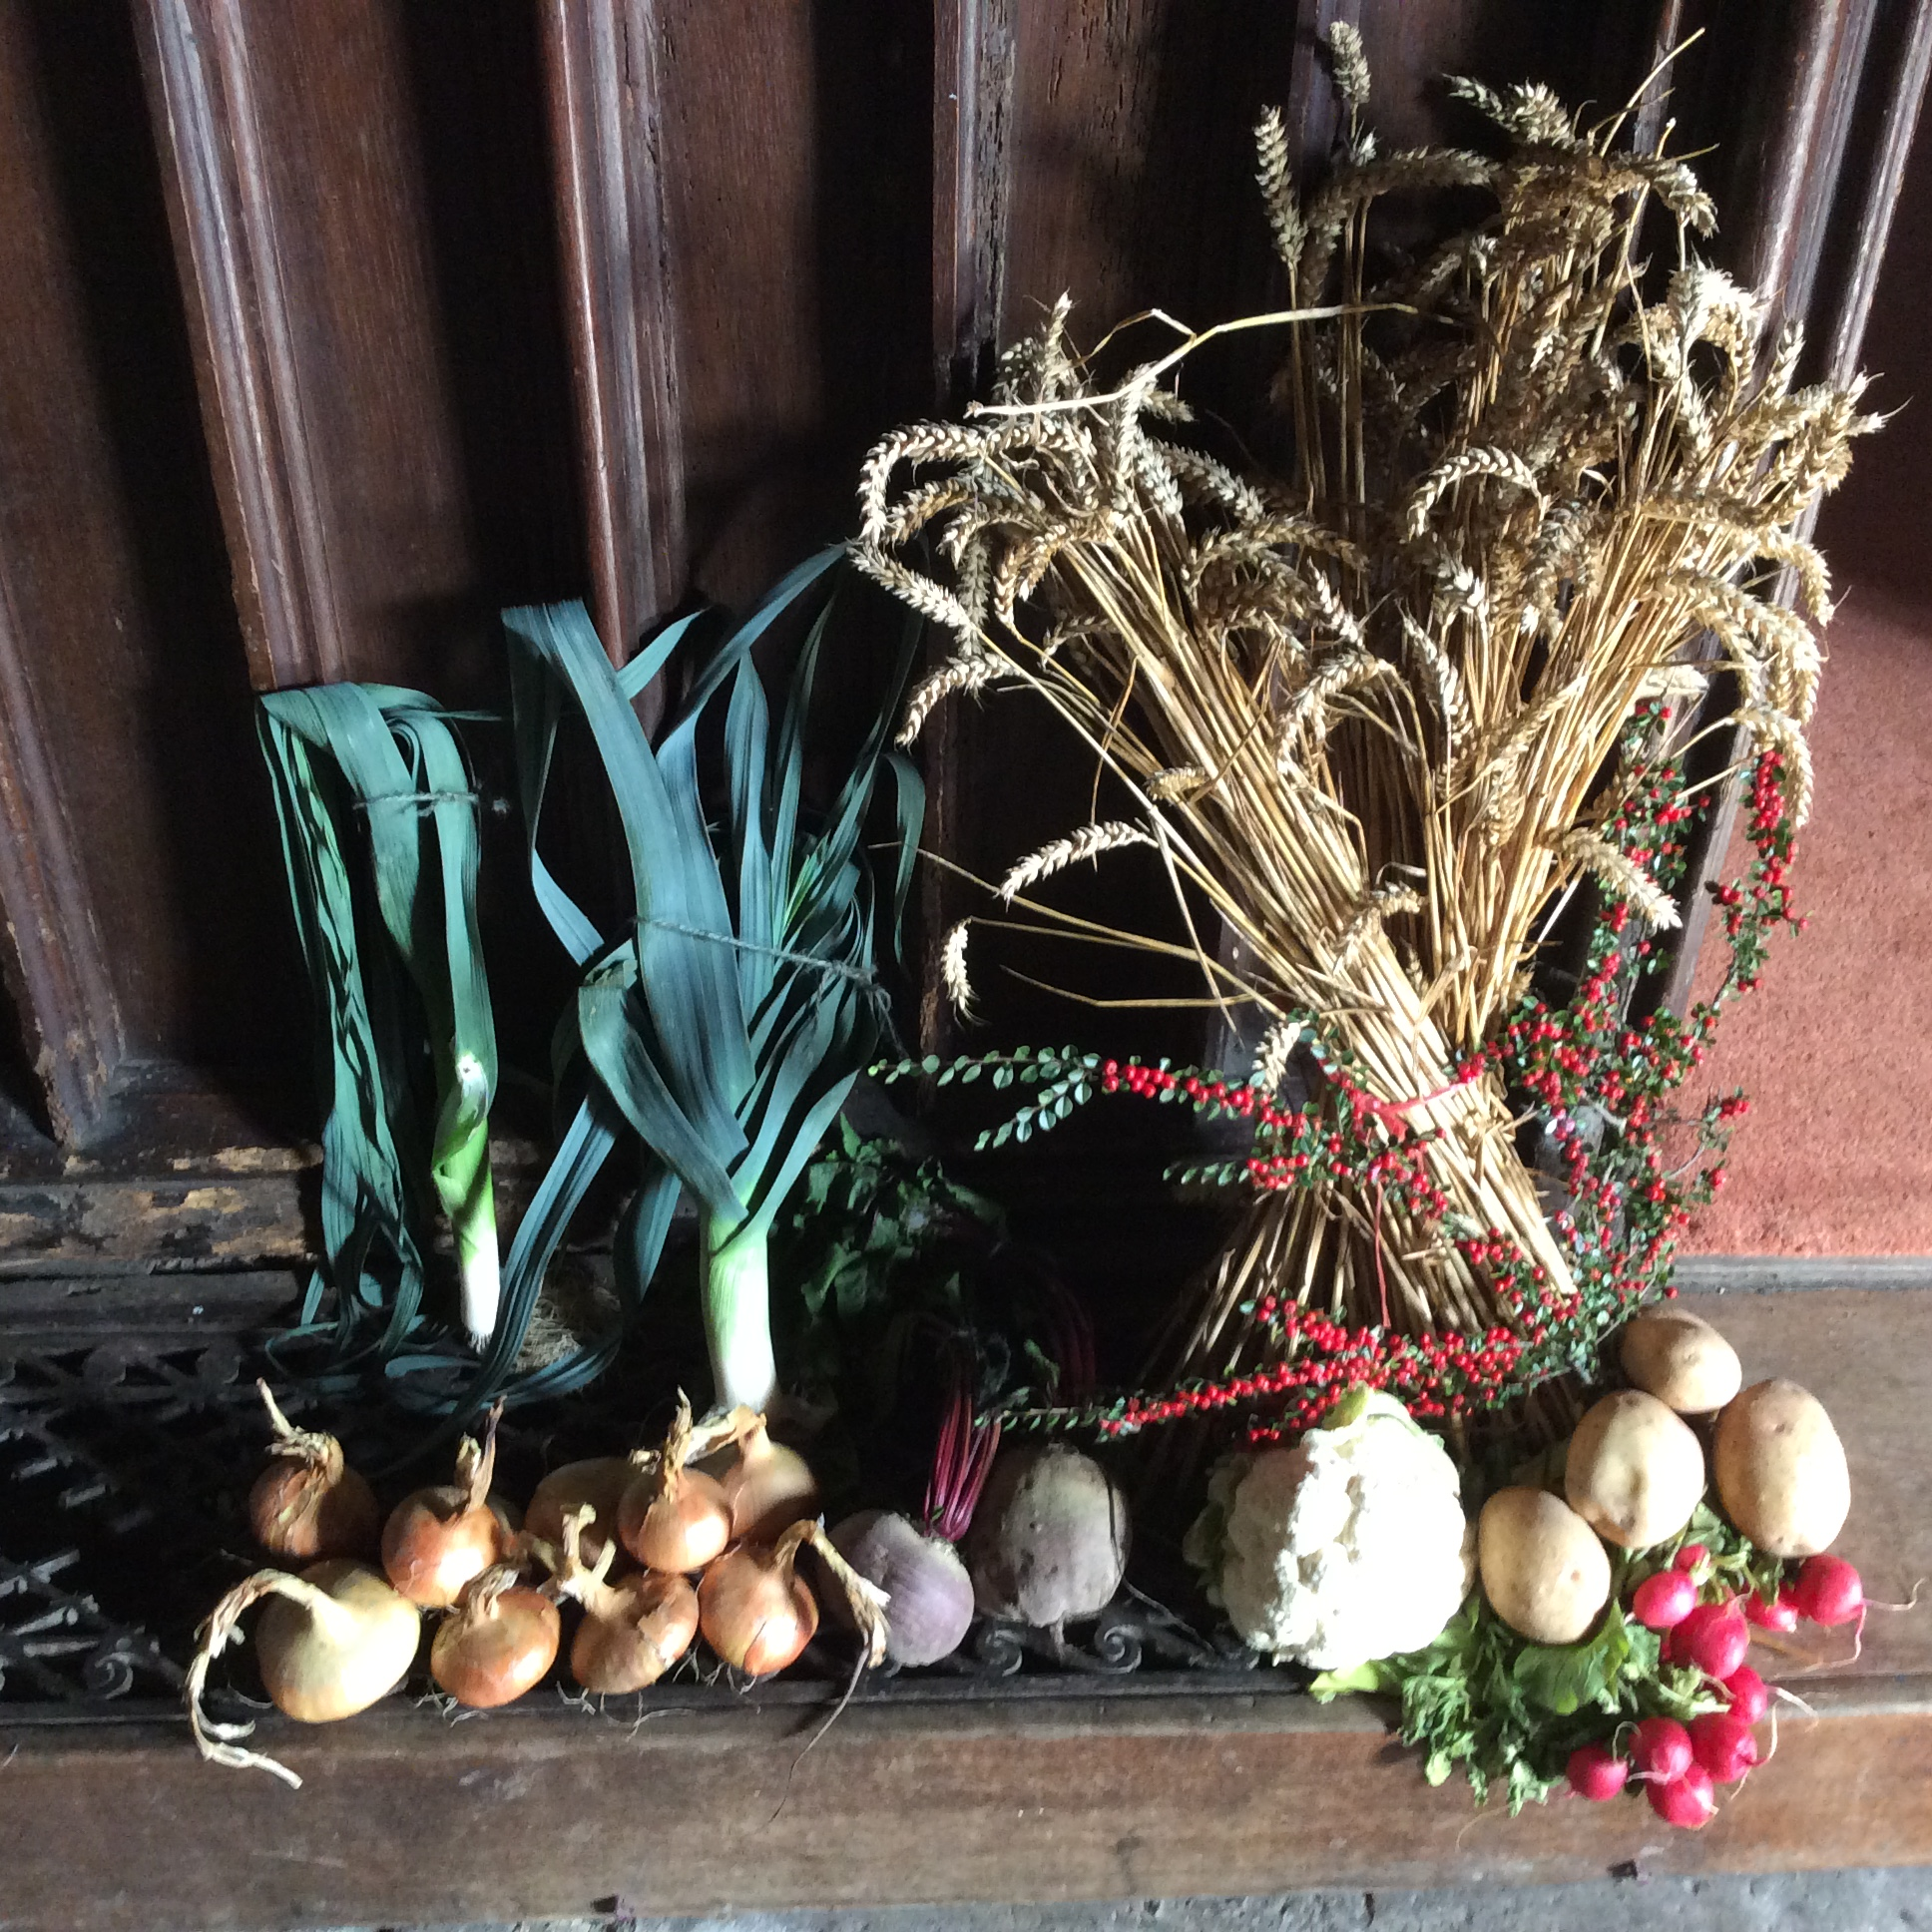 Harvest decorations